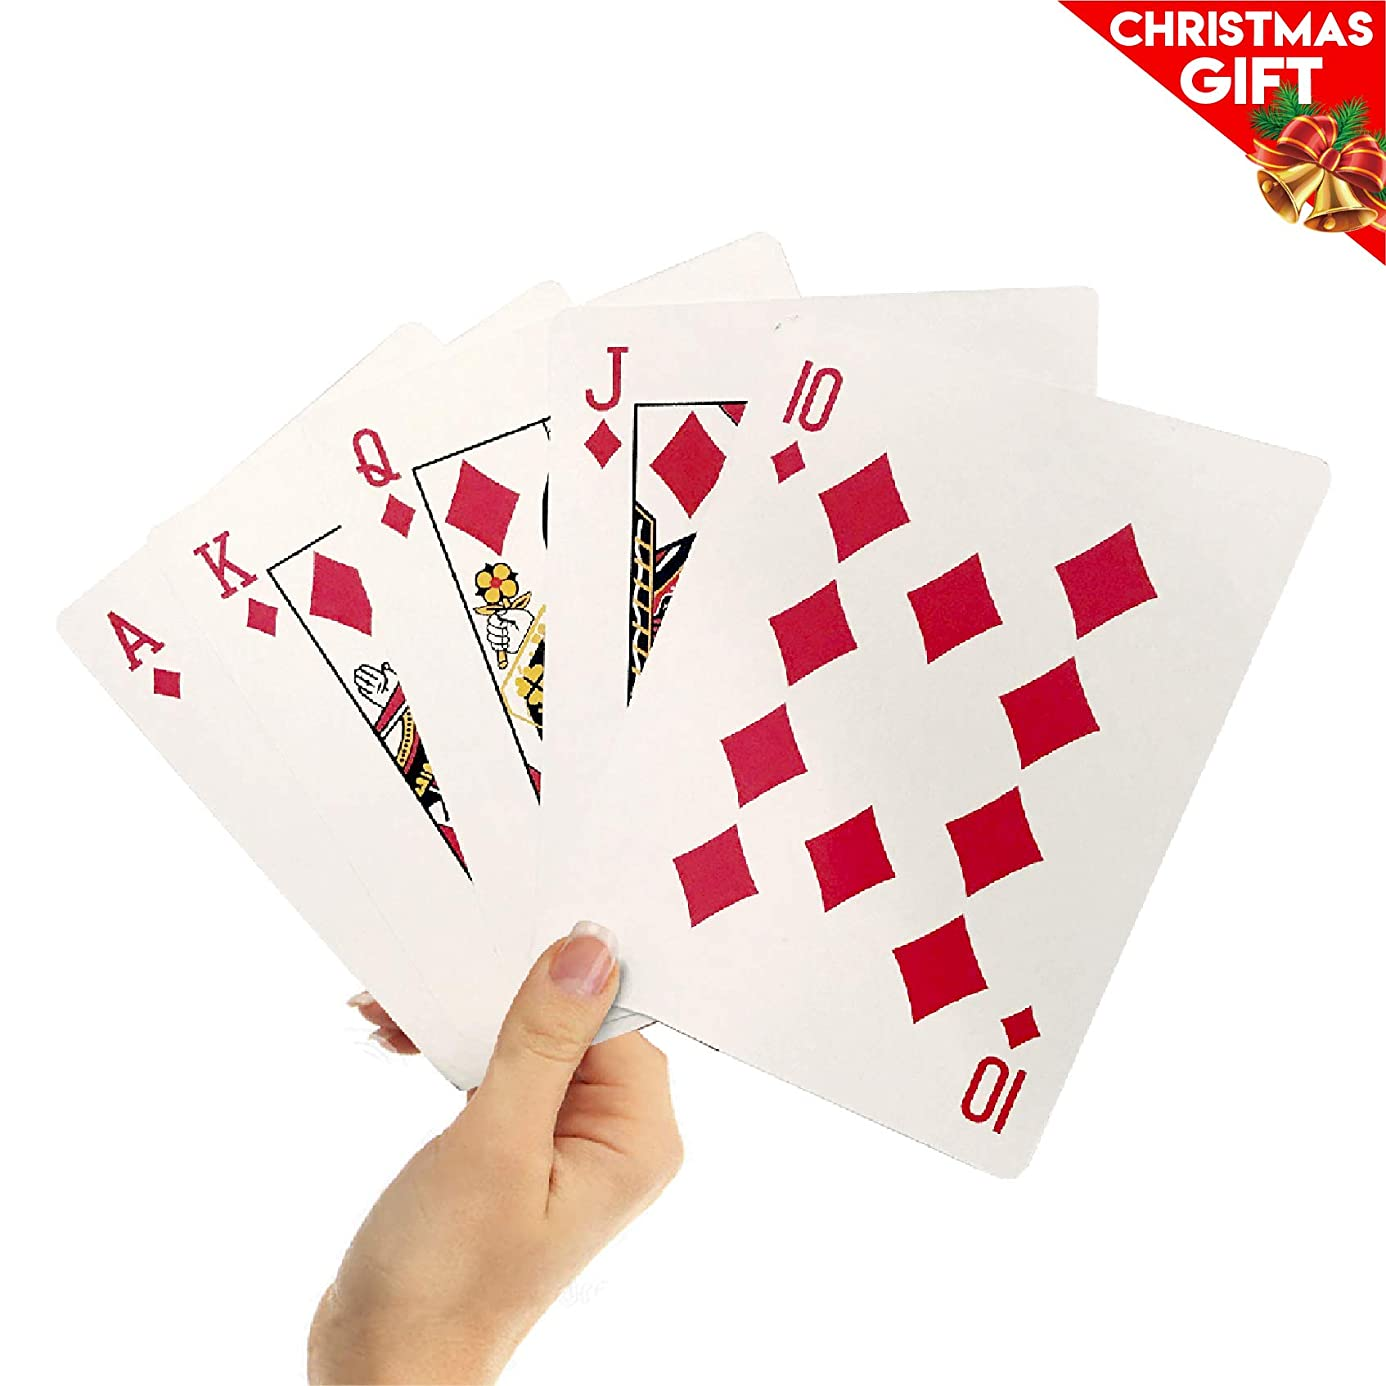 EasyGoProducts Giant Playing Cards - Novelty Jumbo Cards for Kids, Teens or Seniors - Large Print - Poker Full Deck of Cards